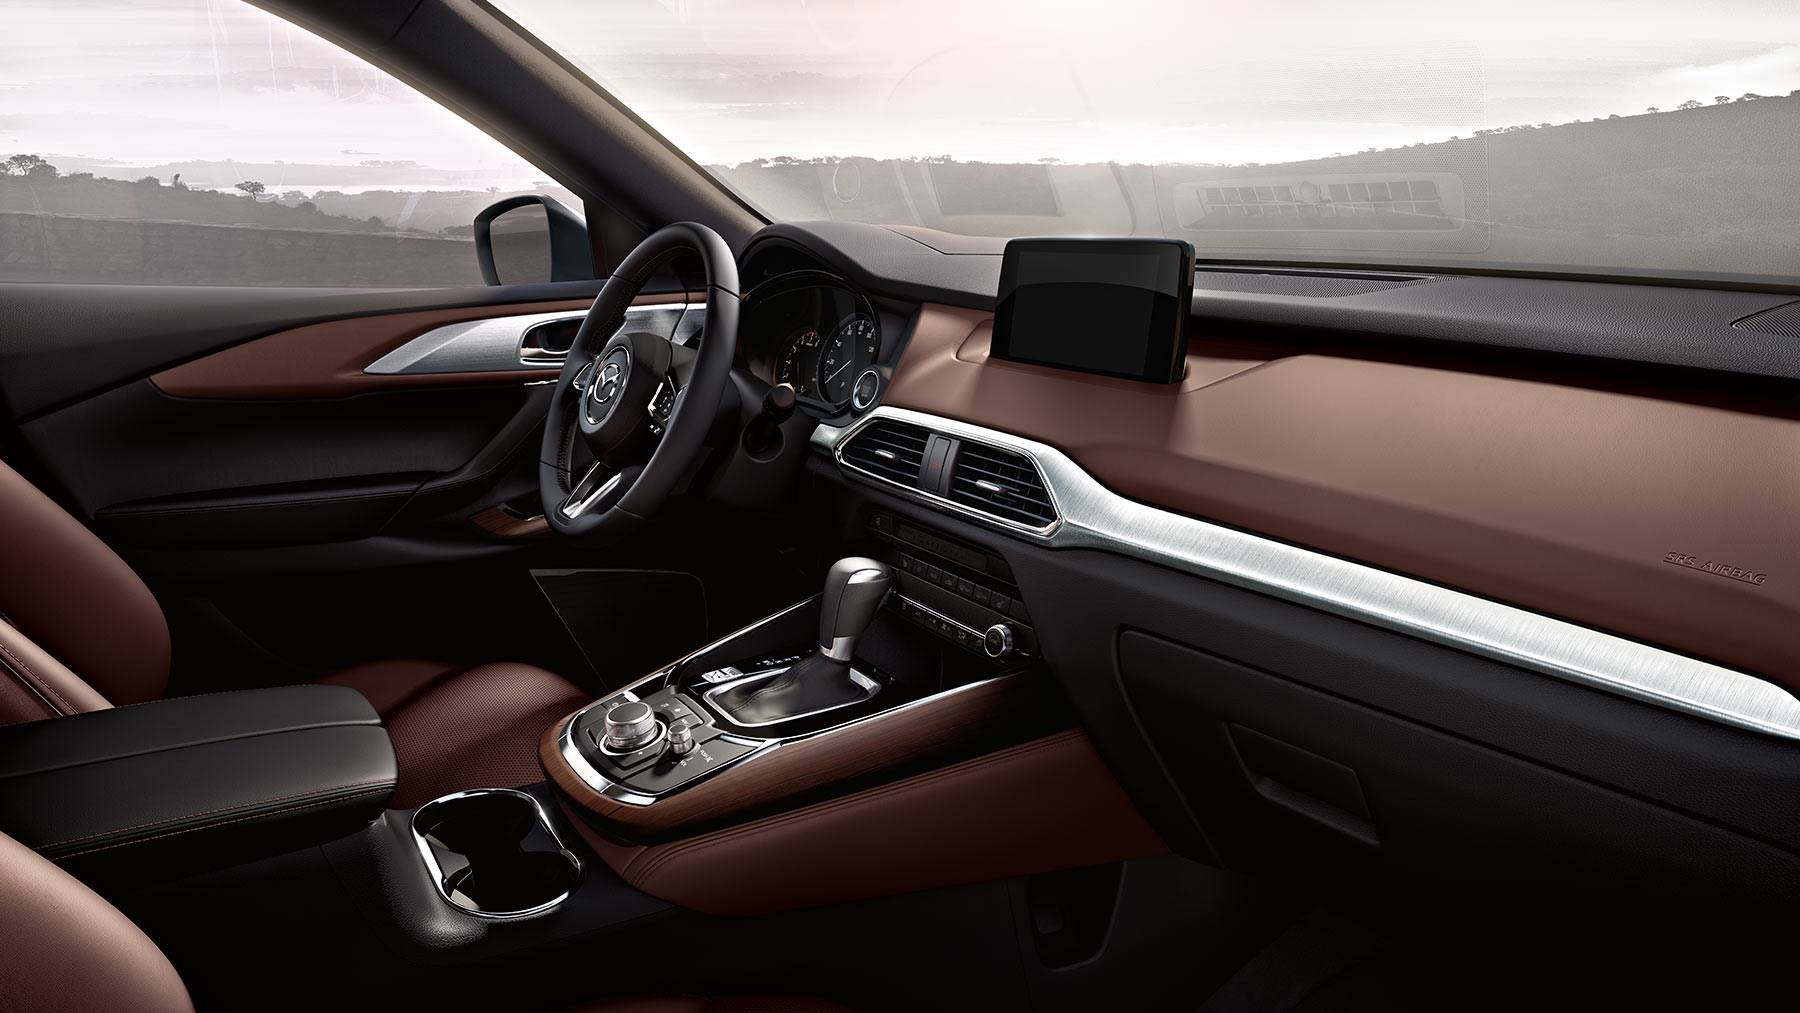 Interior of the 2019 Mazda CX-9